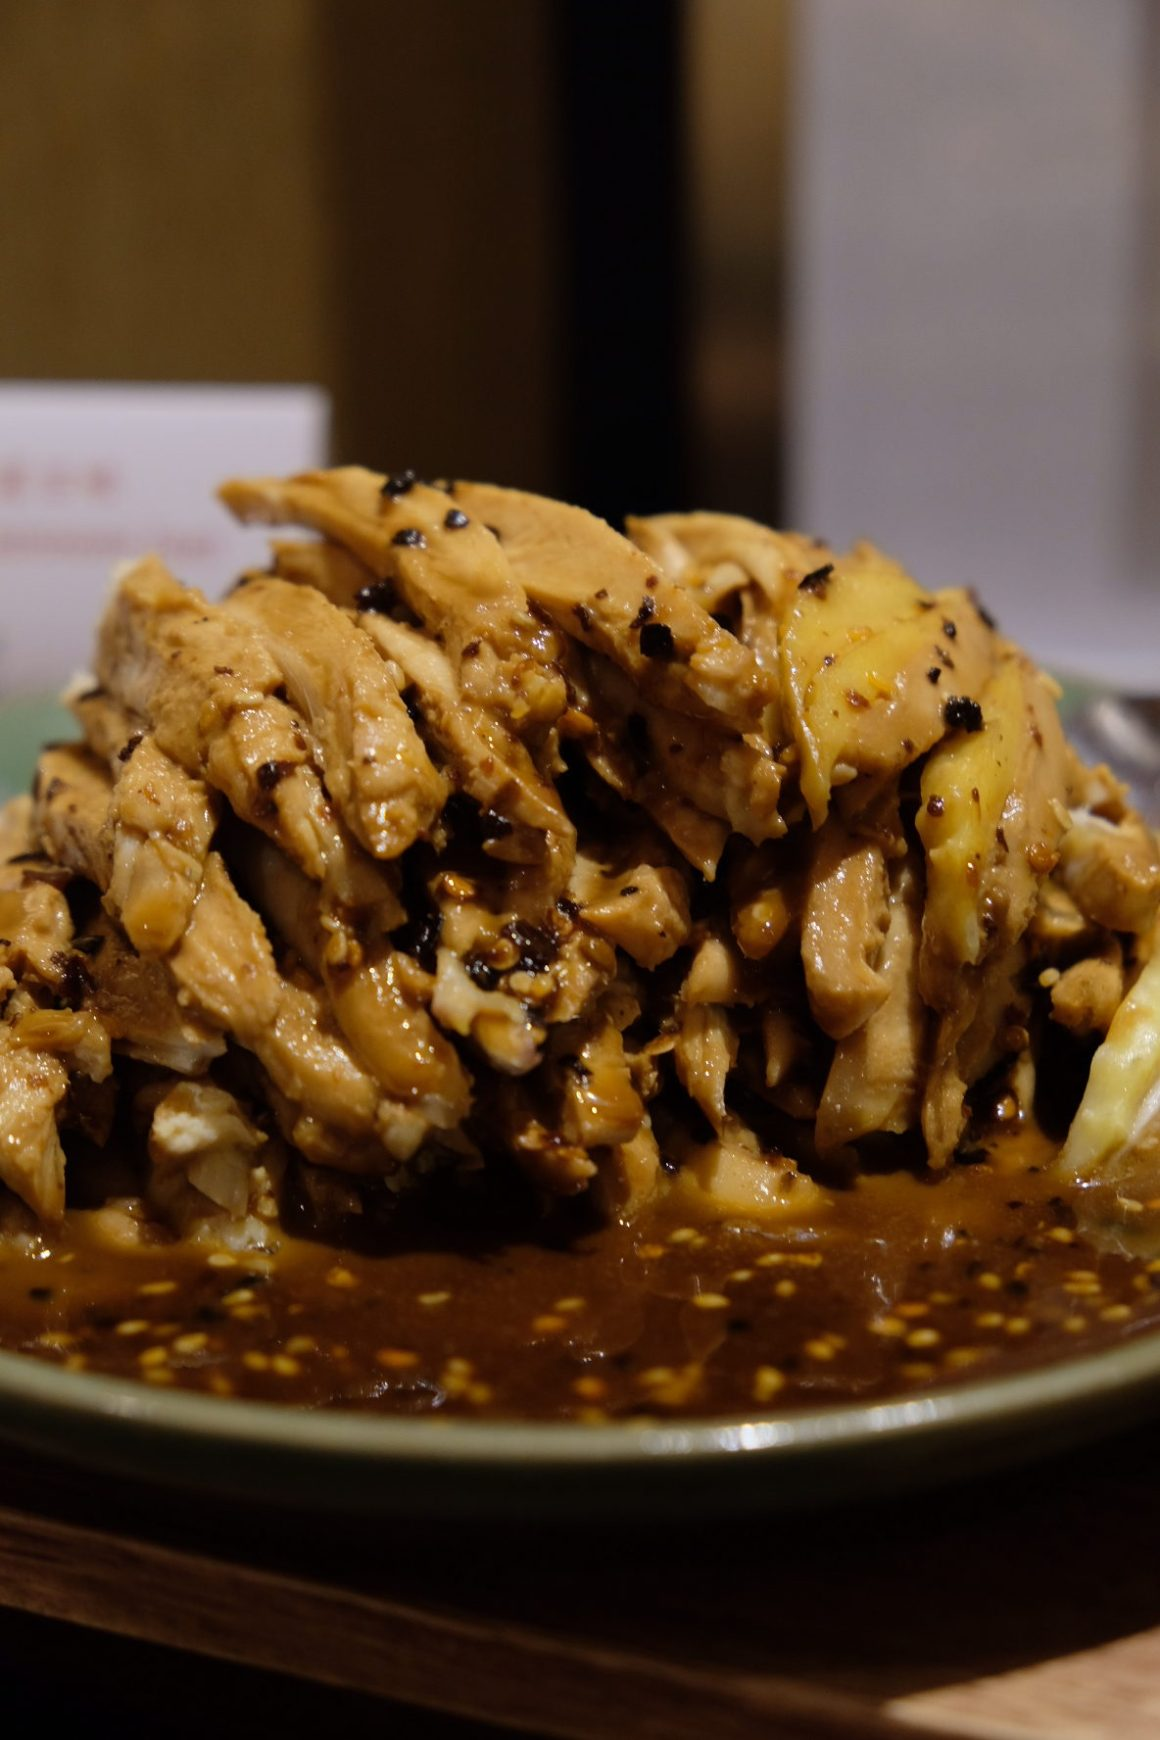 '100 Sichuan Delights, 1 Gastronomic Feast' Is Back At Si Chuan Dou Hua Restaurant at PARKROYAL on Beach Road - Steamed Chicken with Exotic Sichuan Sauce